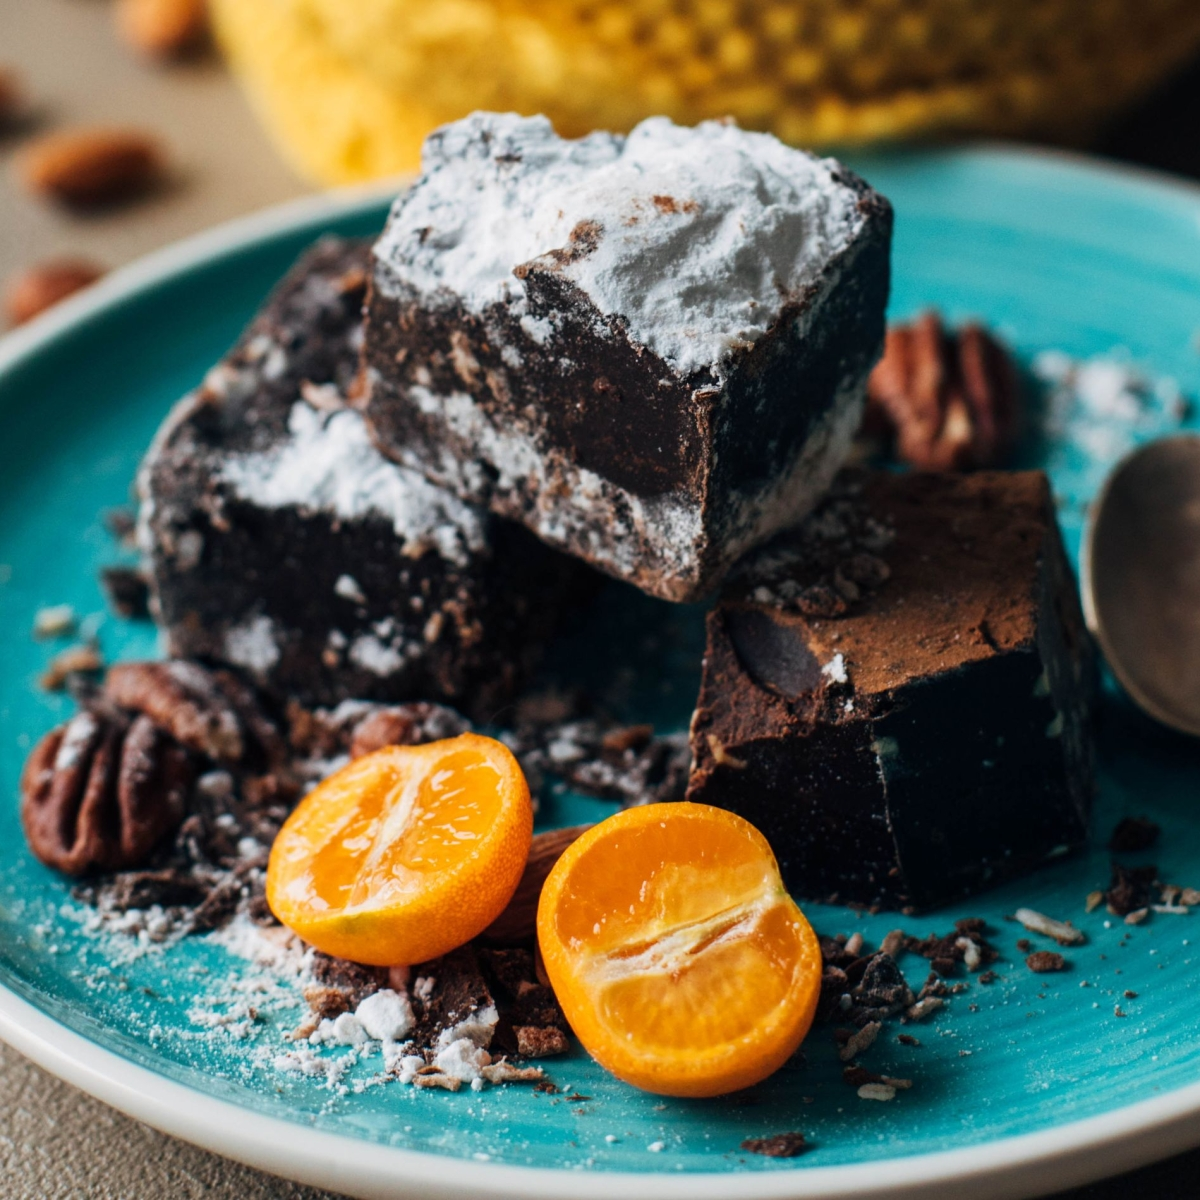 Chocolate Day 2021: Quick and easy recipes with leftover chocolates